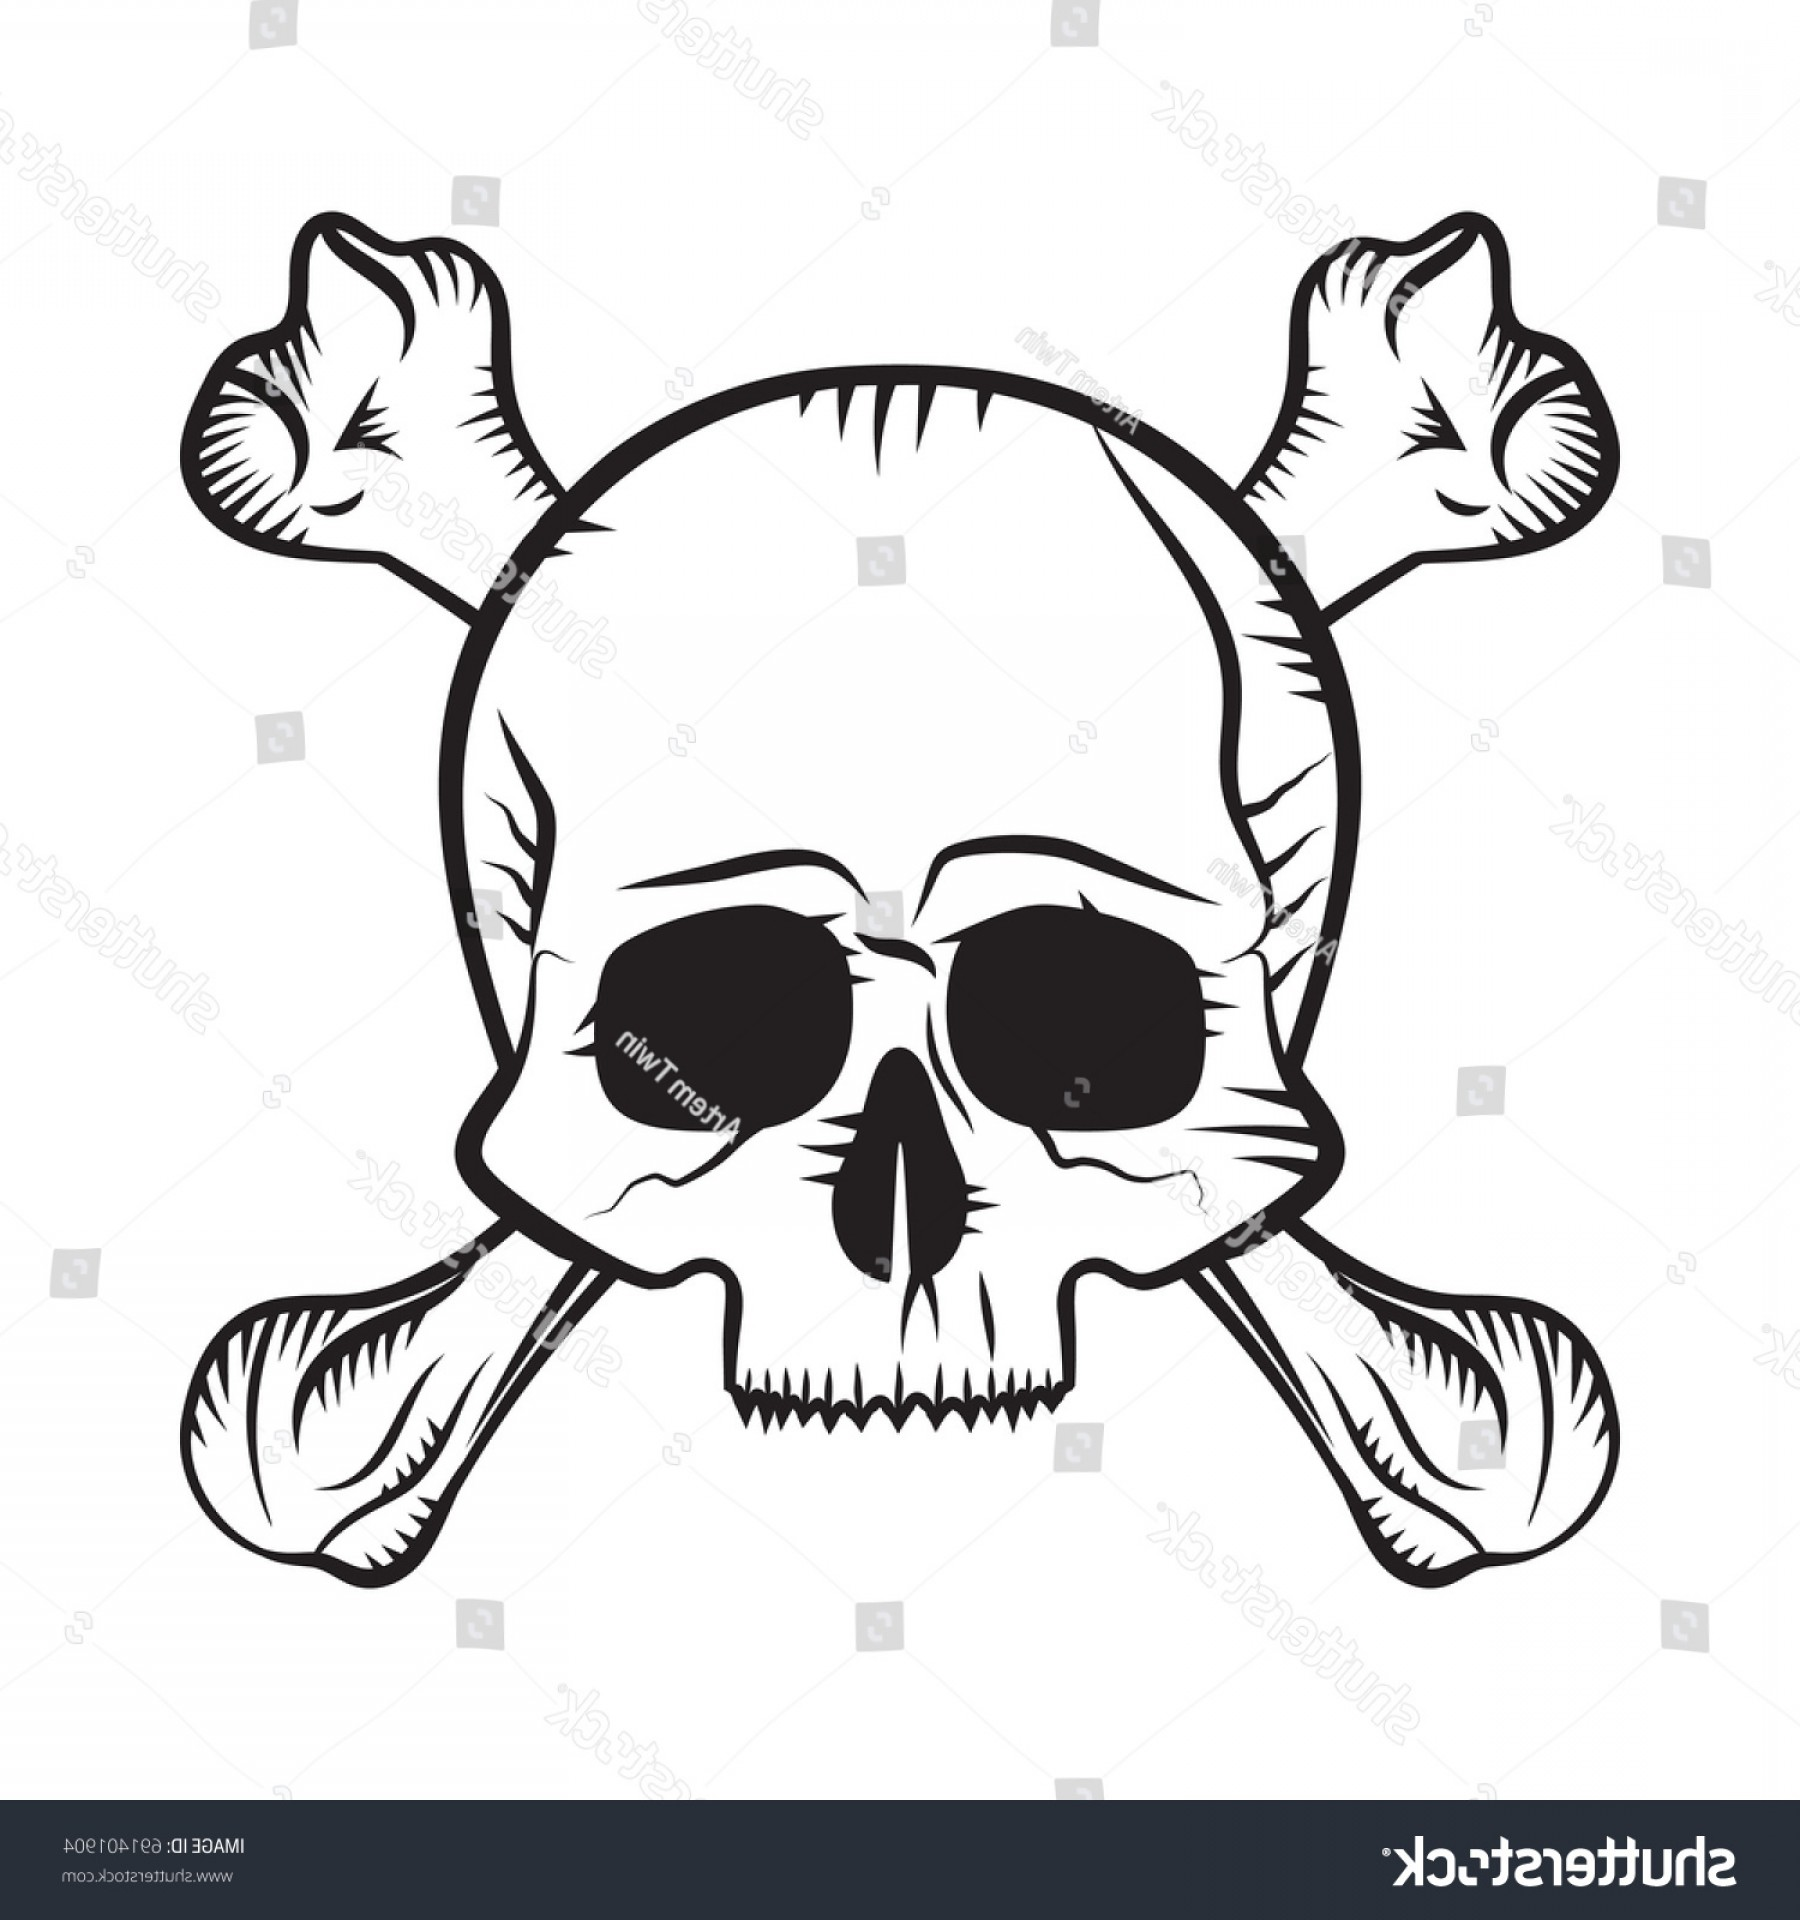 Skull ND Crossbones Vector: Human Skull Crossbones Drawing Like Pirates